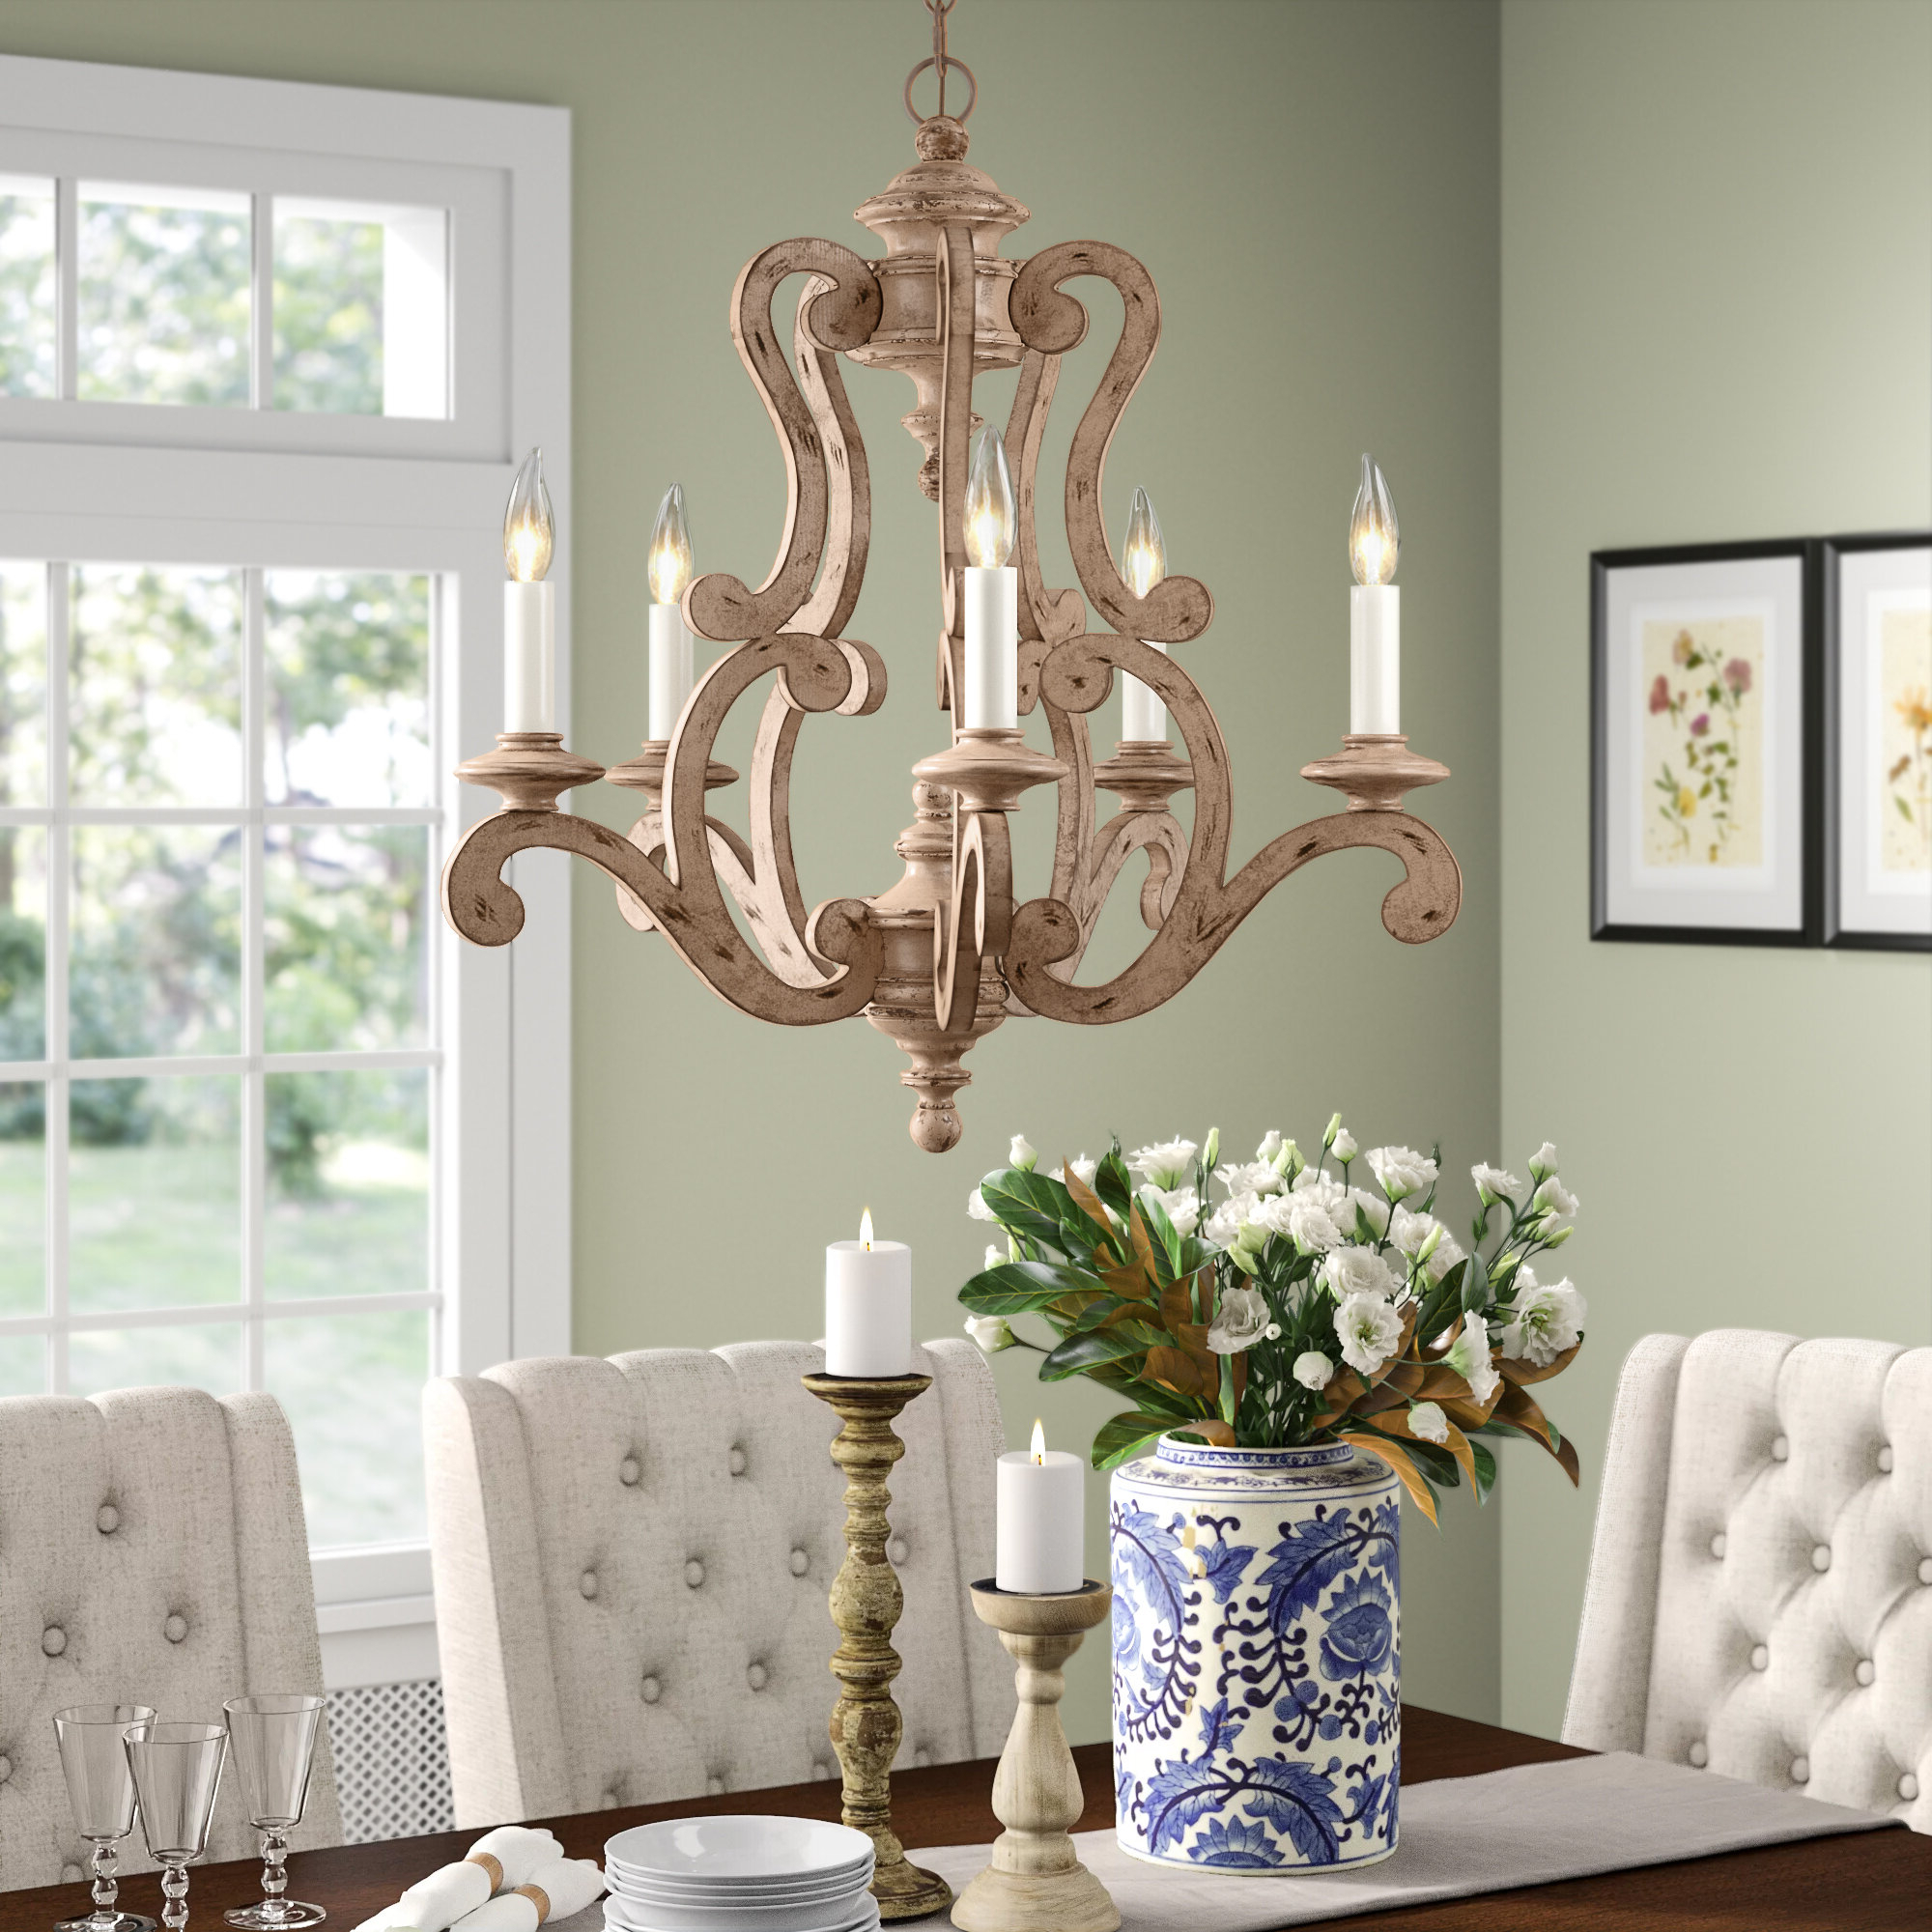 Corneau 5 Light Chandeliers With Most Up To Date Guglielmo 5 Light Candle Style Chandelier (View 9 of 20)